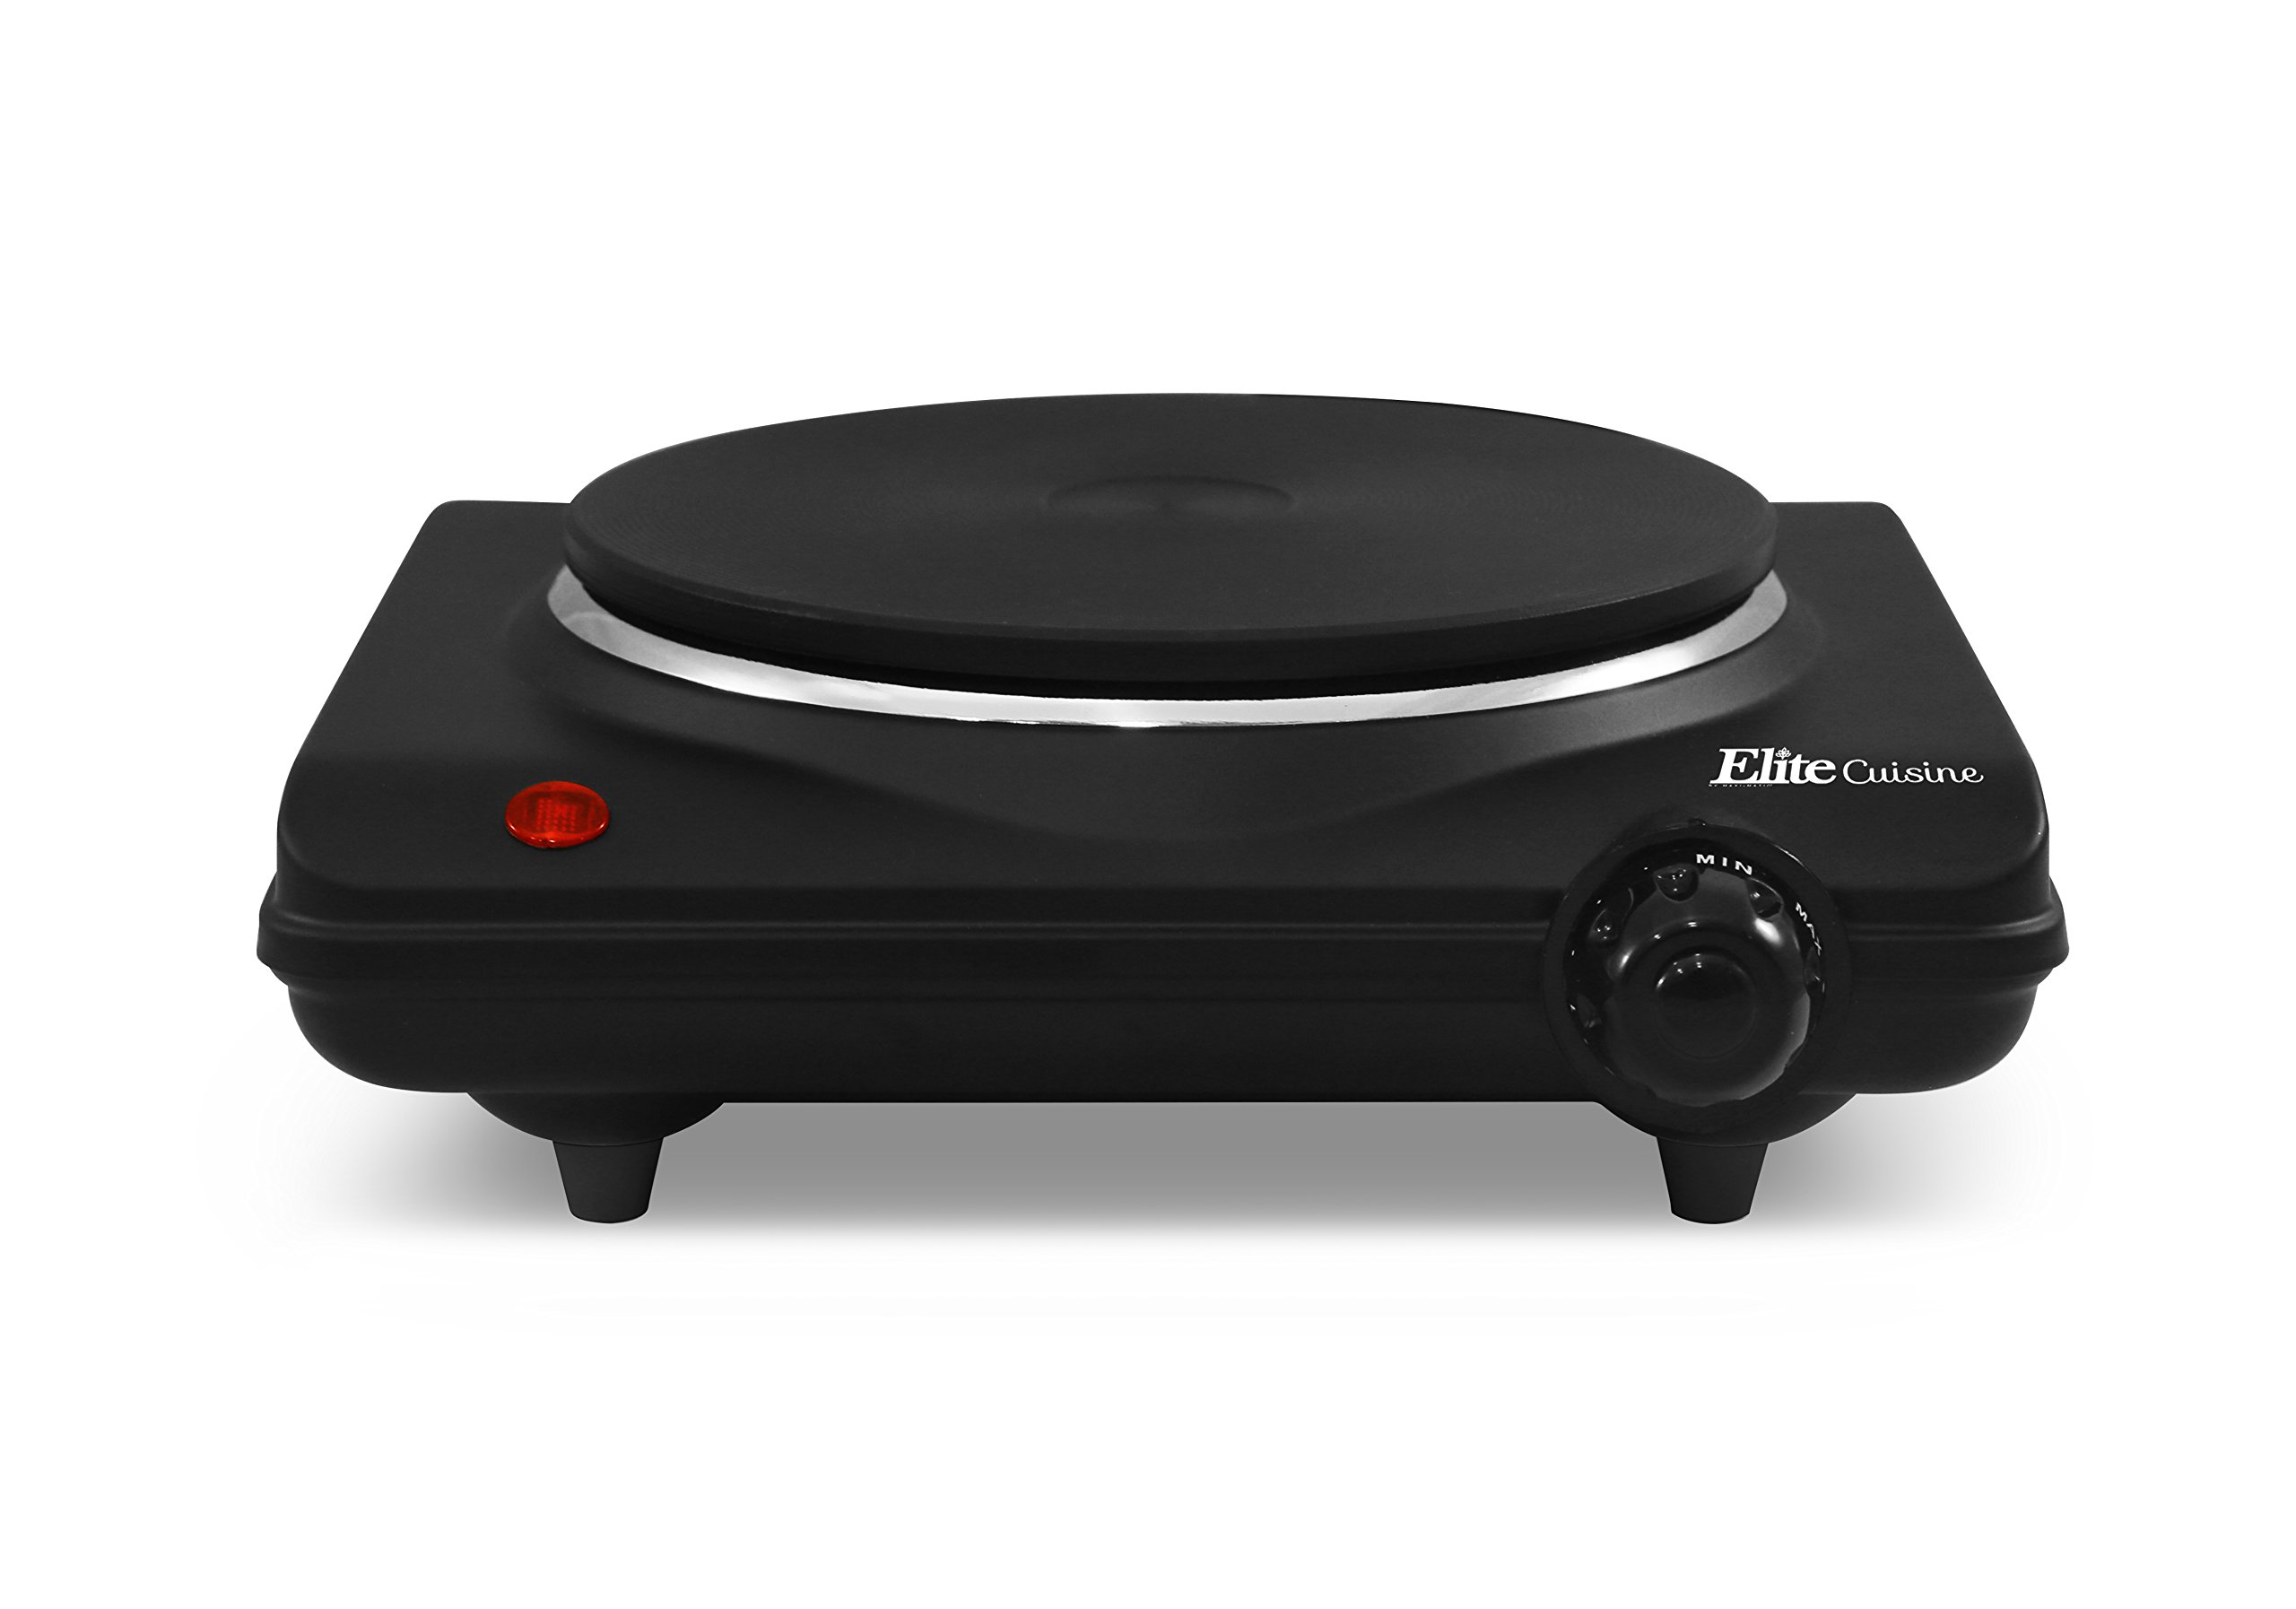 Elite Cuisine ESB-301BF Single Countertop Portable Buffet Burner Electric Hot Plate, Heavy duty flat cast iron heating plate, power indicator light, non-skid feet, easy to clean, 1000 Watts, Black by Maxi-Matic